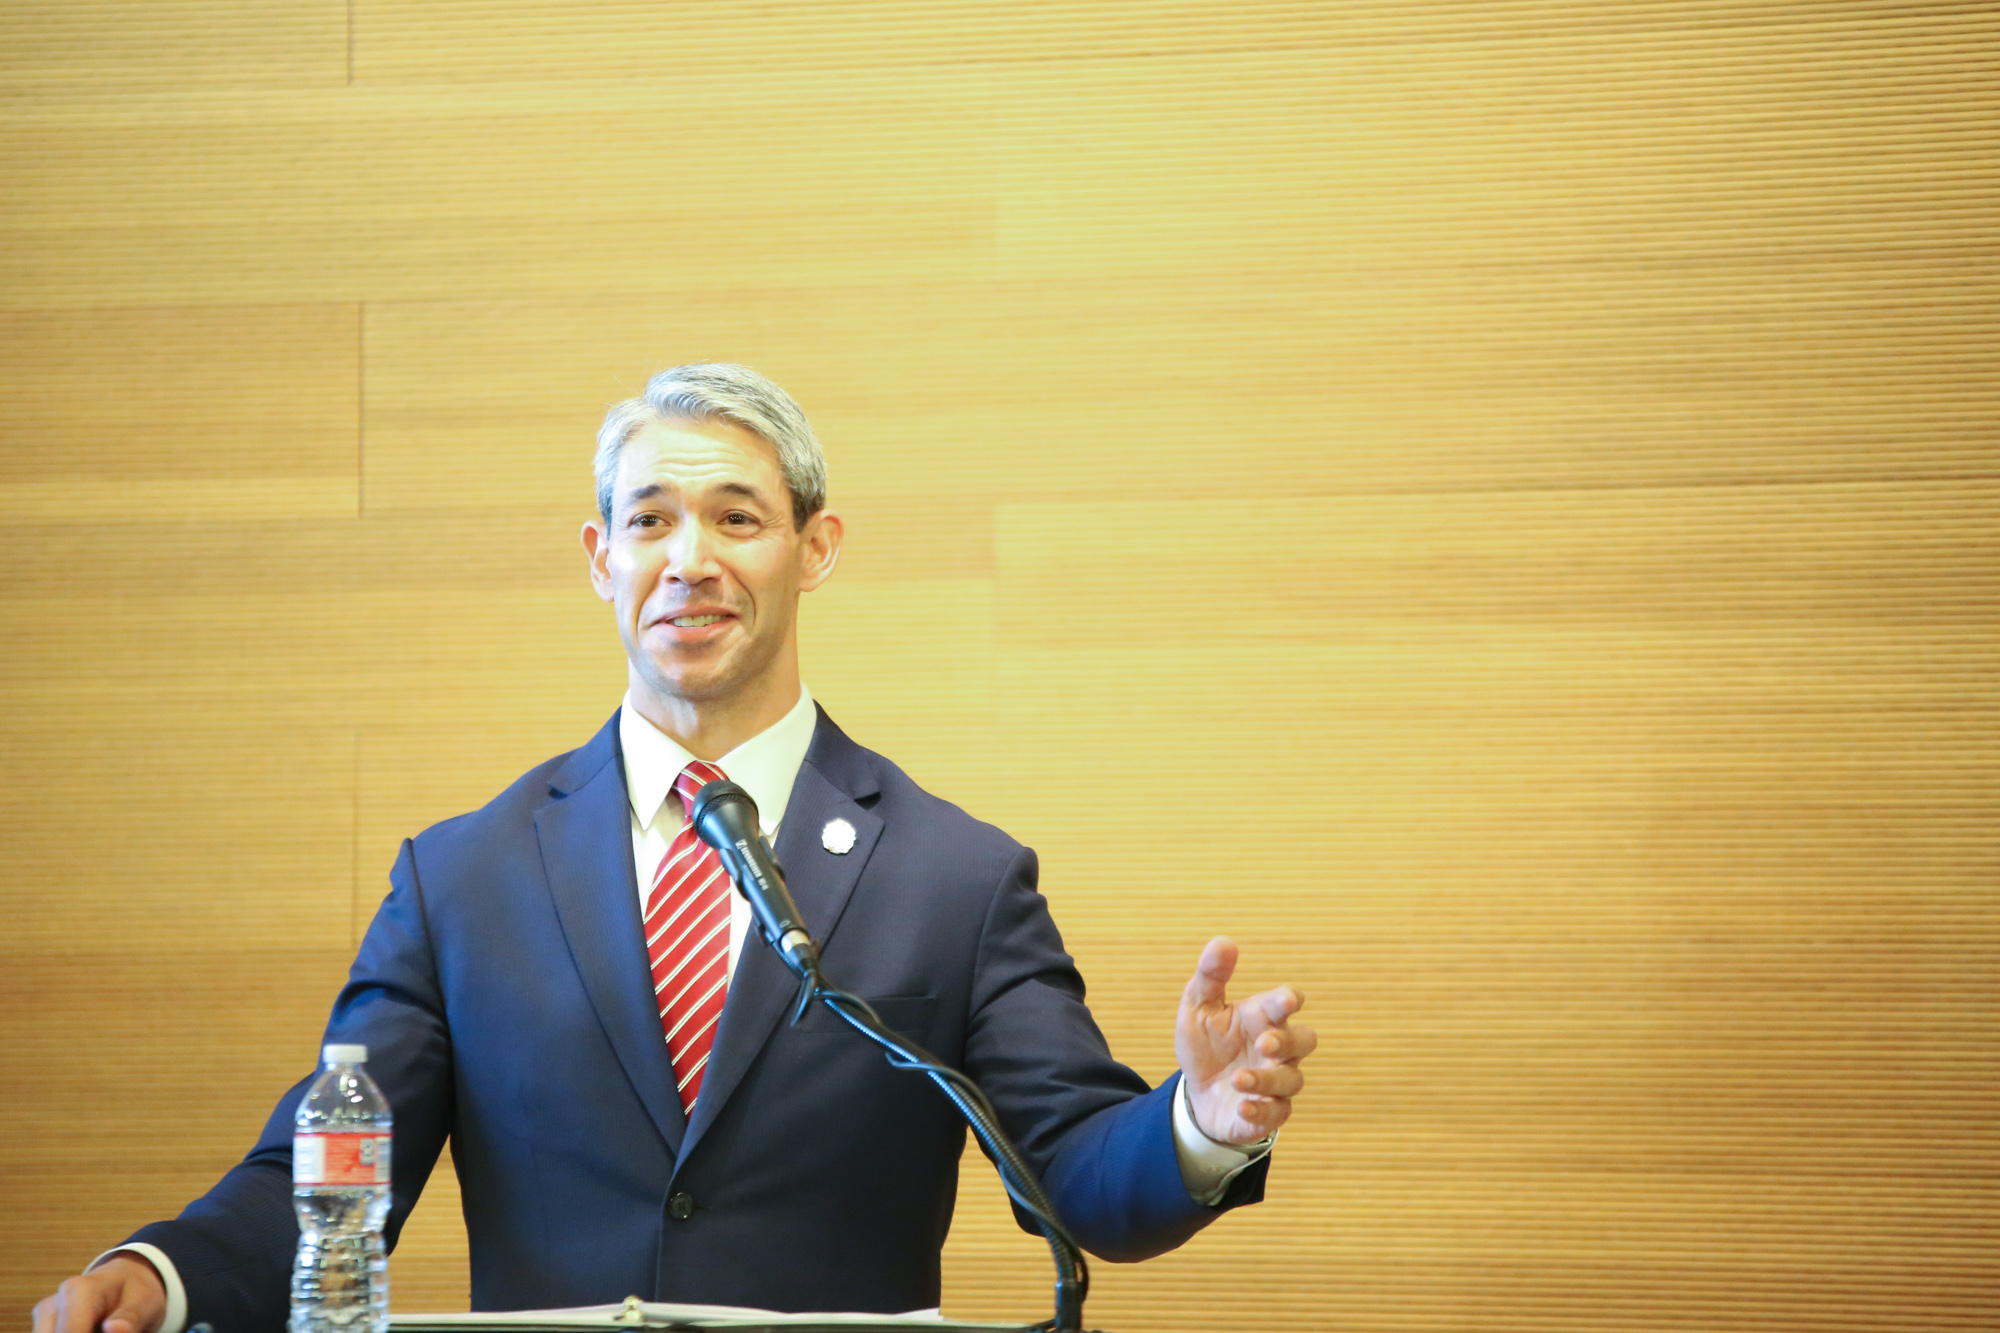 Nirenberg's Top 3 Issues Facing SA: - 1. ECONOMY2. TRAFFIC3. CRIME